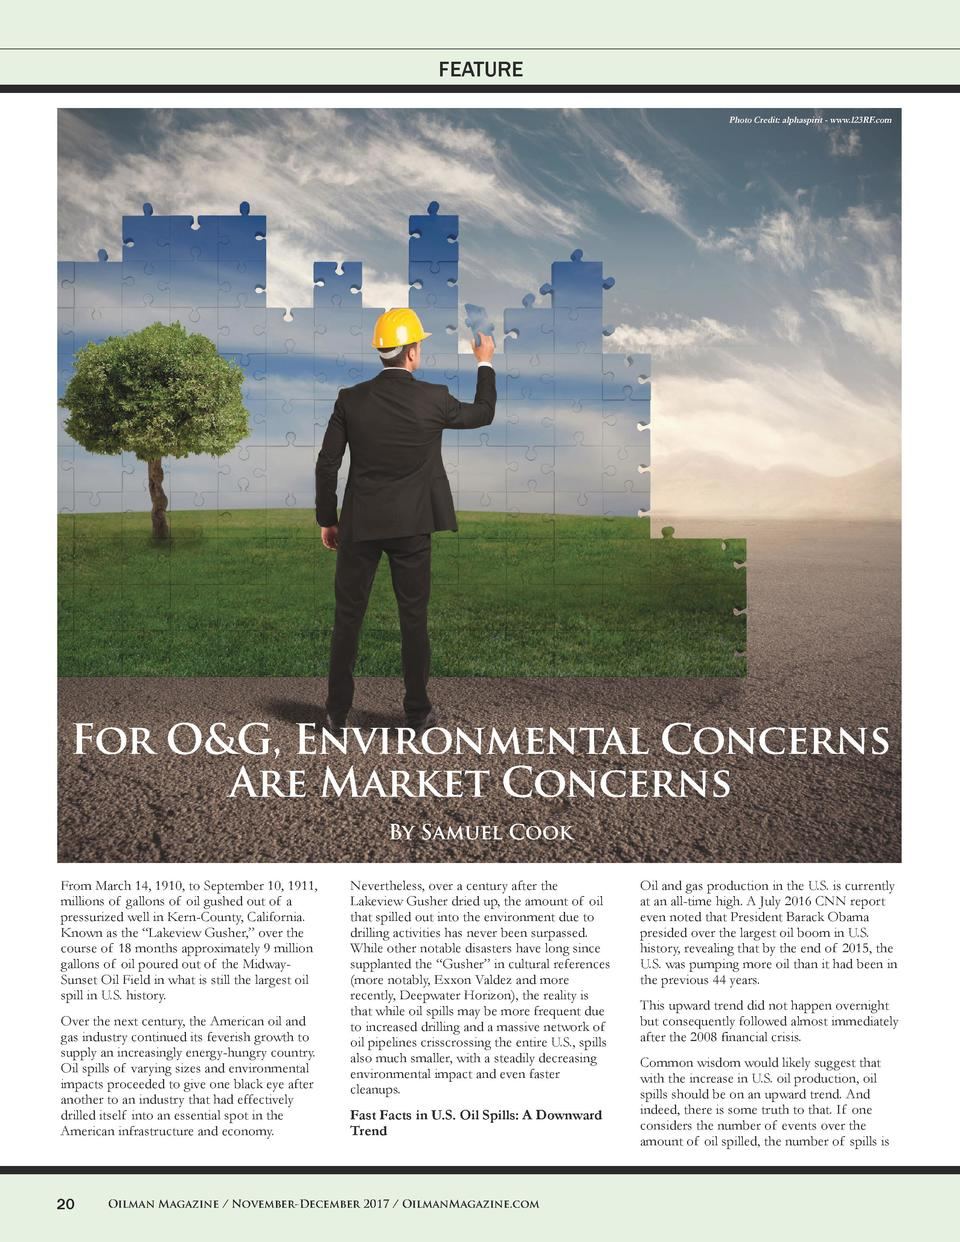 FEATURE Photo Credit  alphaspirit - www.123RF.com  For O G, Environmental Concerns Are Market Concerns By Samuel Cook From...